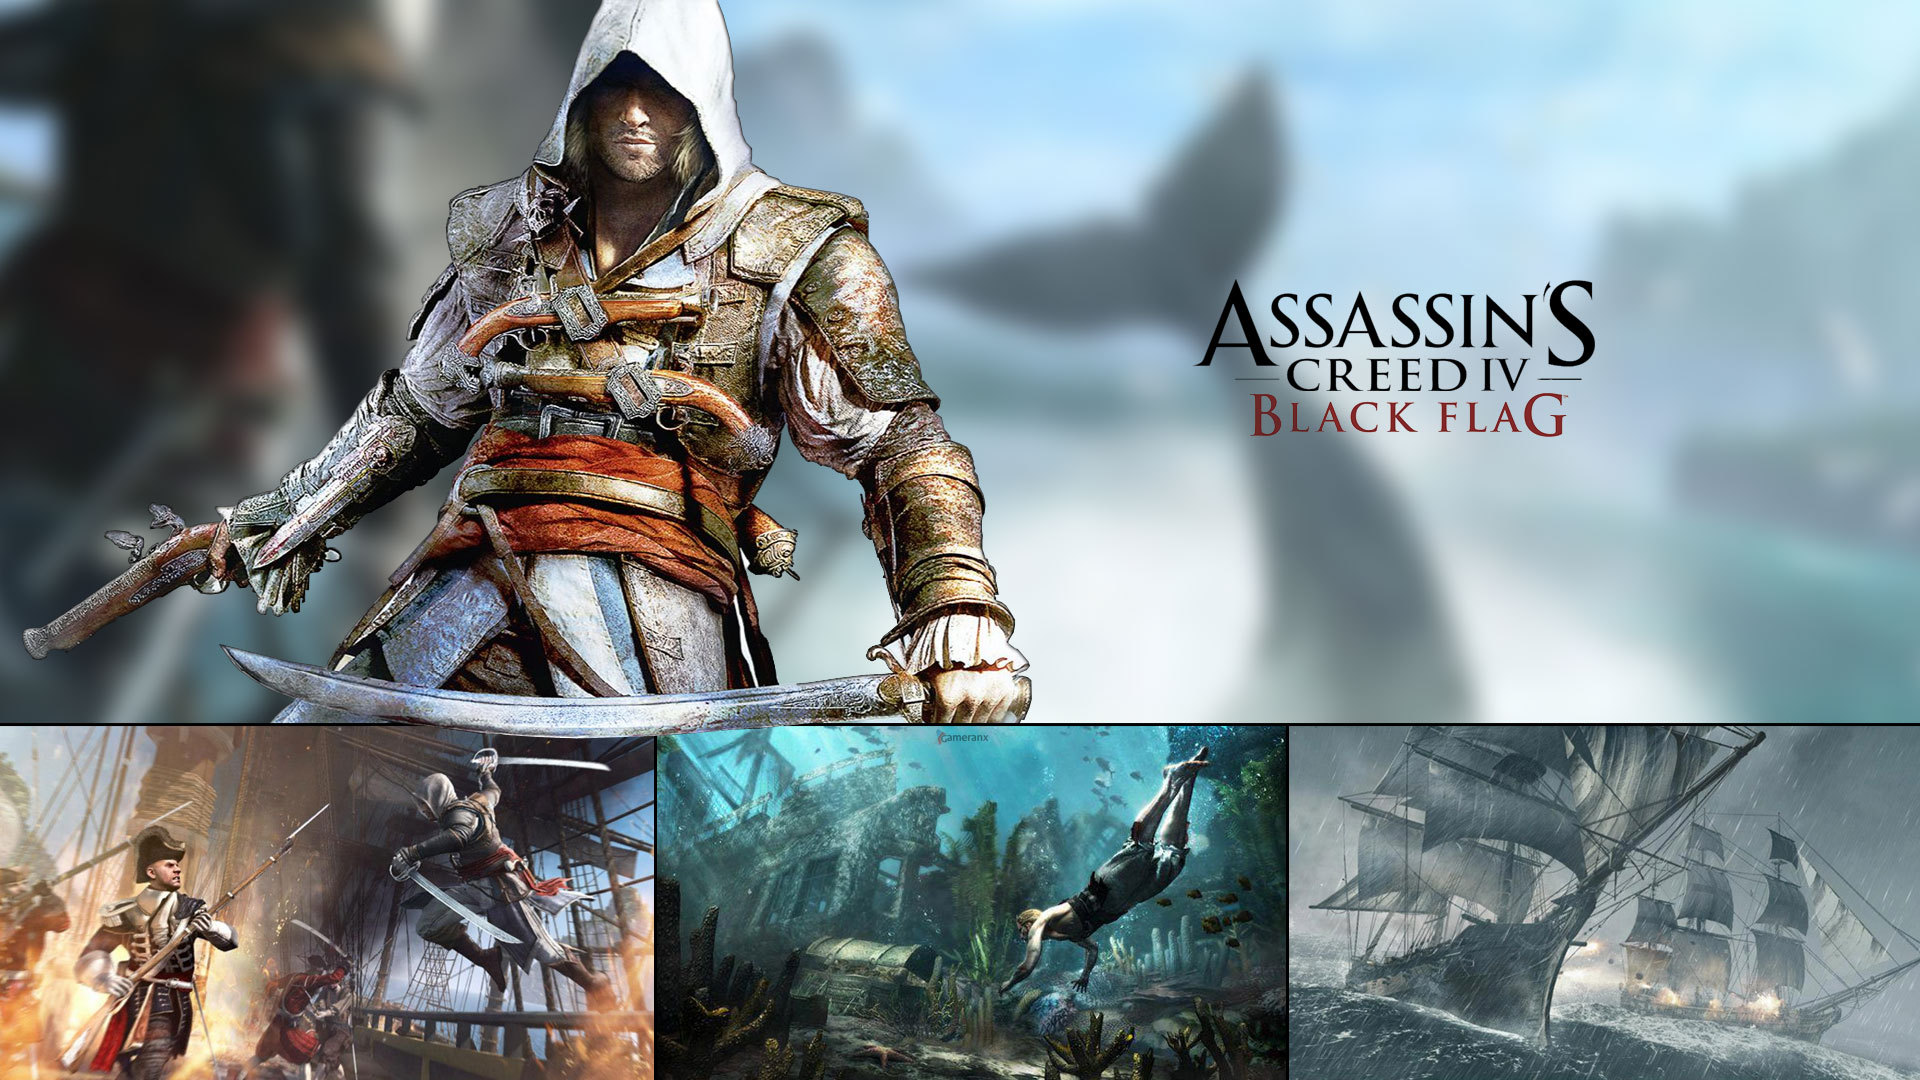 1920x1080px assassin s creed black flag wallpaper wallpapersafari assassins creed 4 wallpapers hd black flag wallpapers page 1 1920x1080 voltagebd Image collections